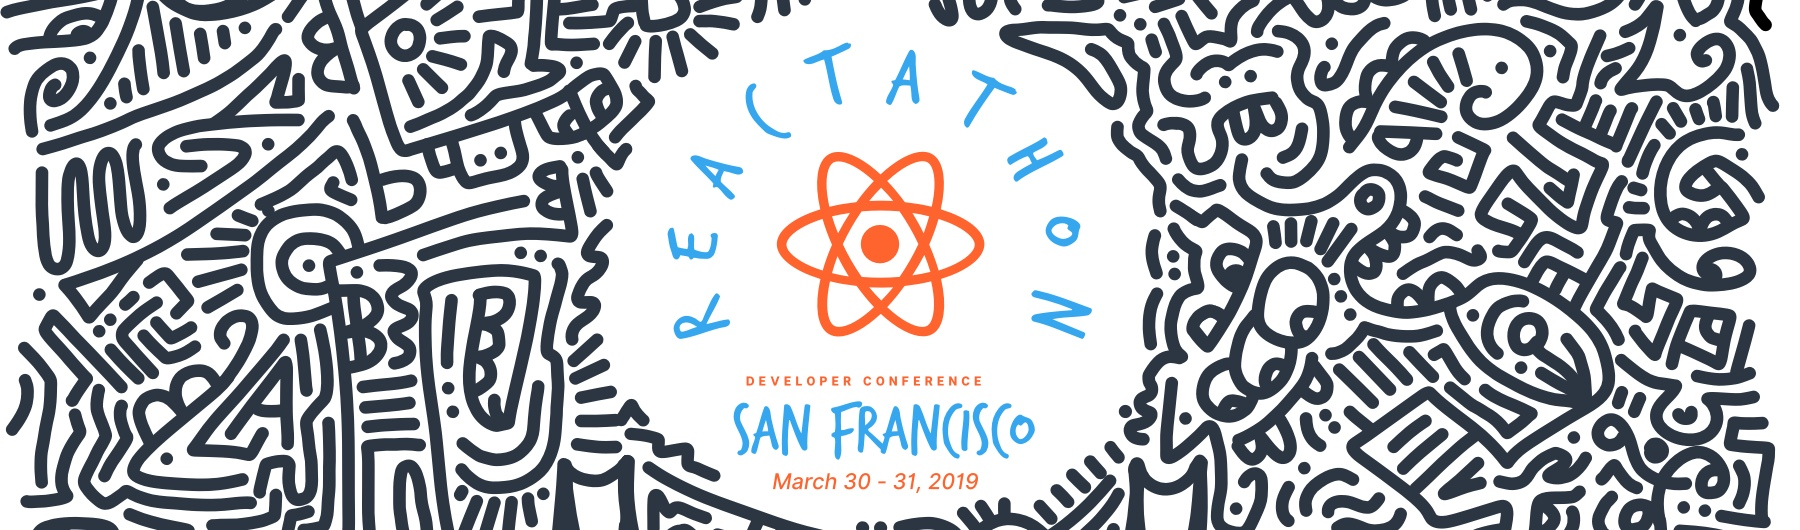 Reactathon - Building Accessible Web Apps with React